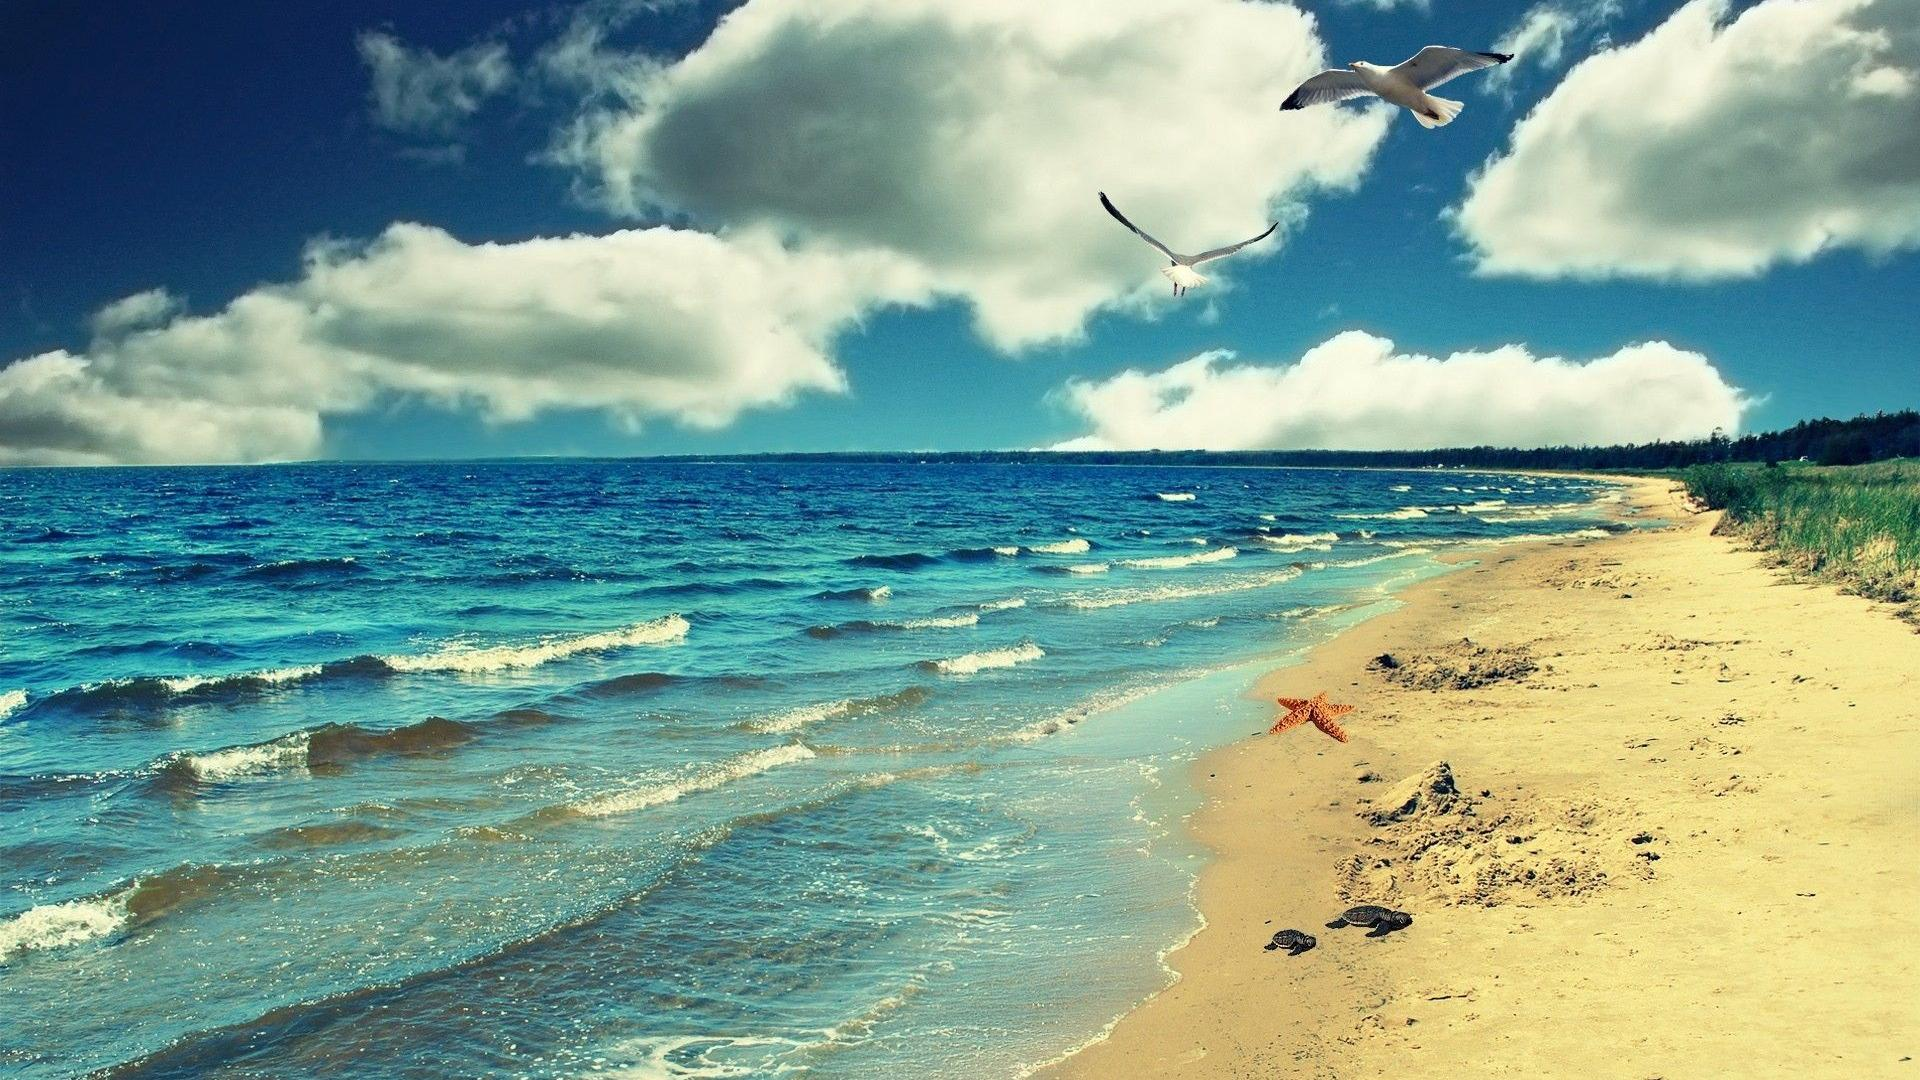 Free Download Hd Beach Wallpapers 1080p With 19201080 Pixel Wide